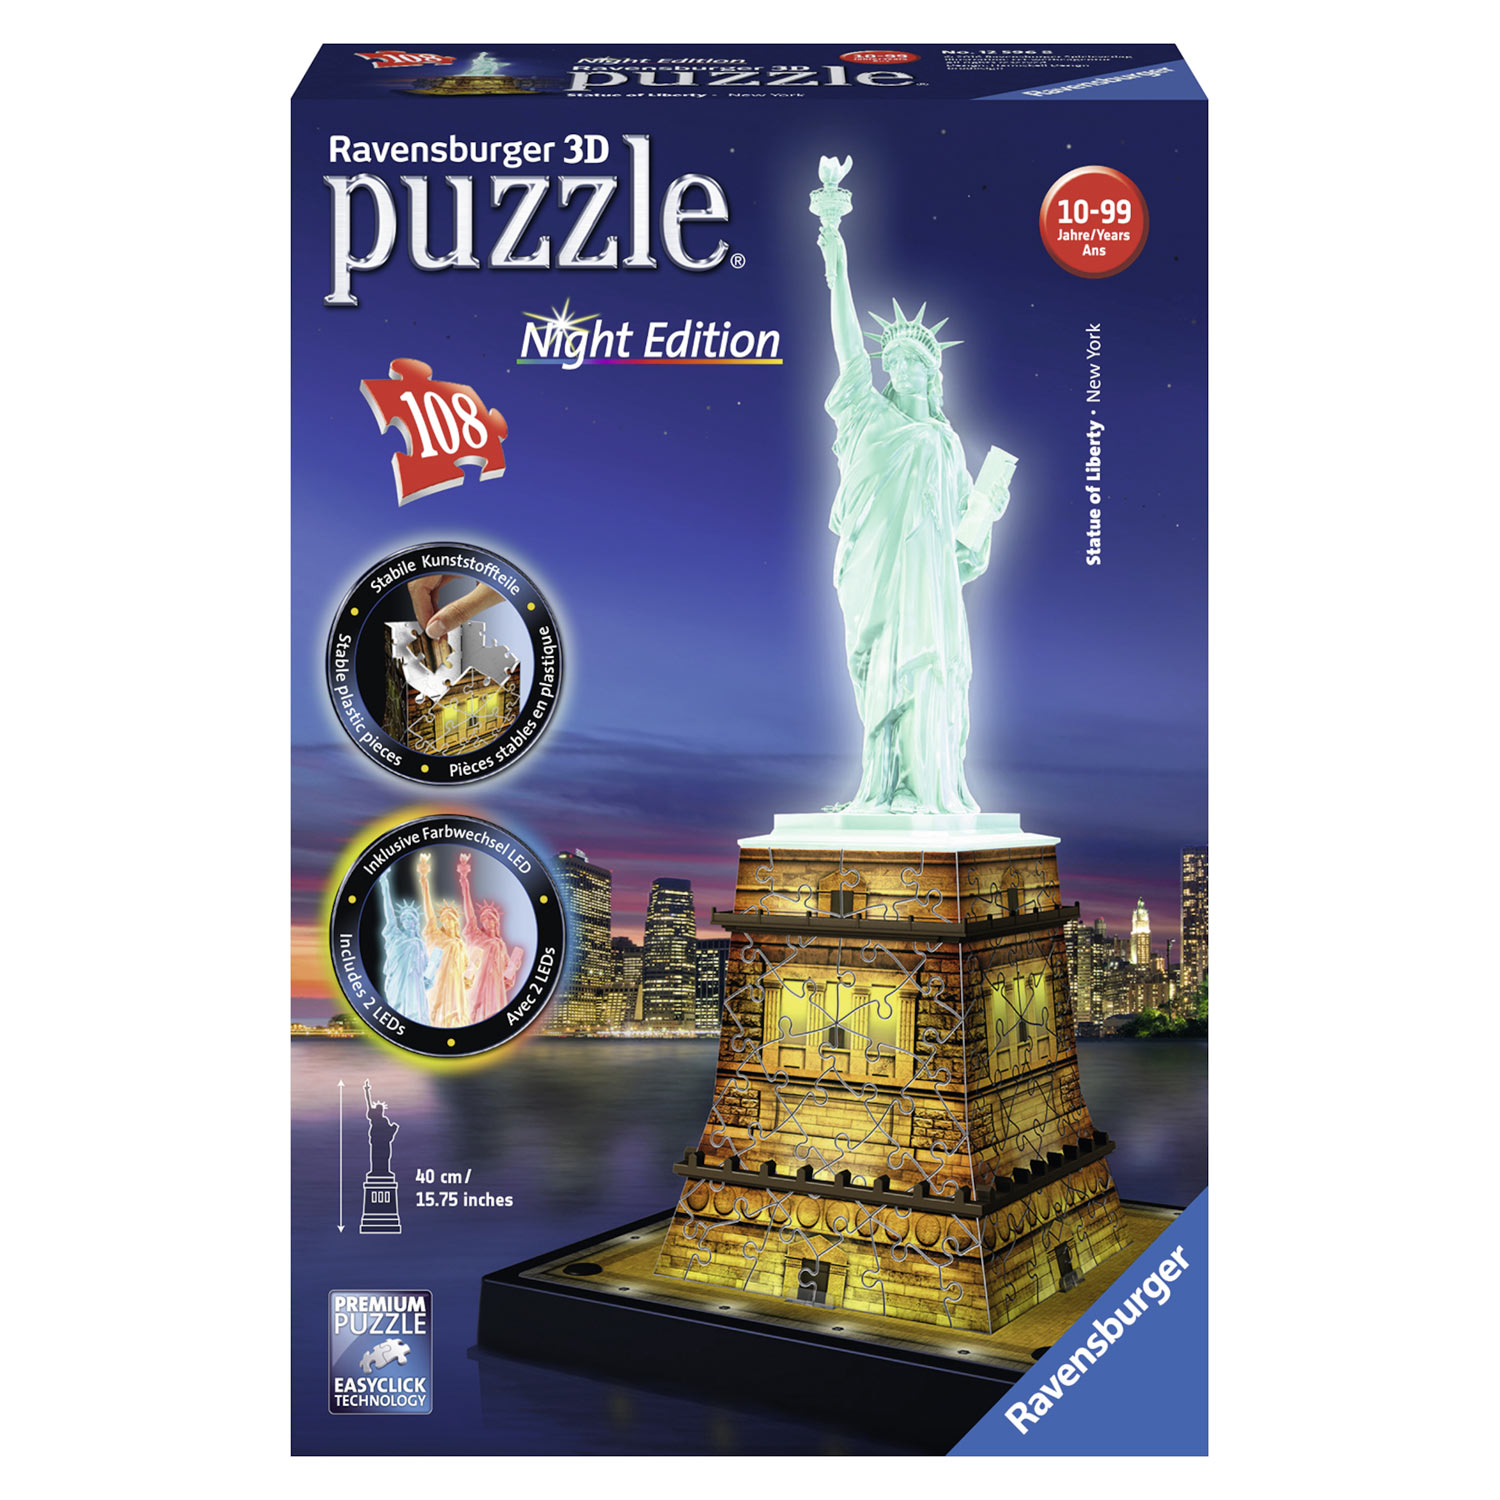 Ravensburger 3D Puzzel - Vrijheidsbeeld Night Edition